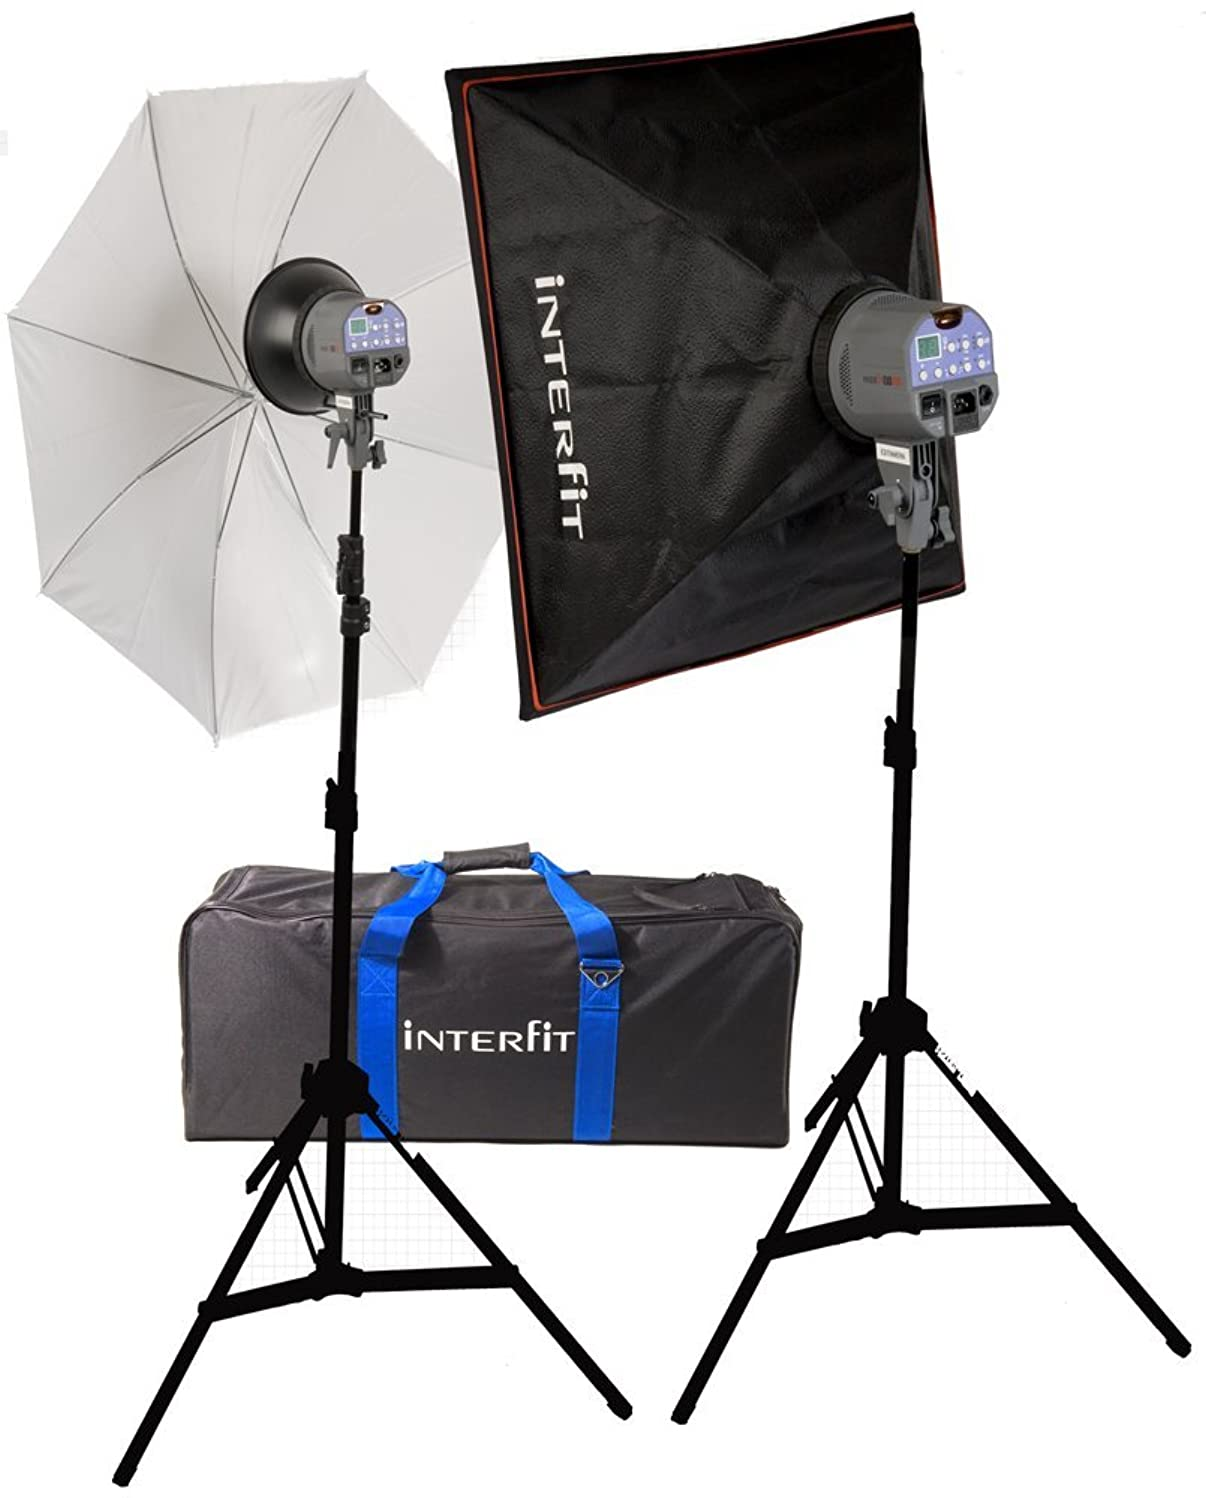 Interfit INT119 EXD 200Watt/second 2 Head Digital Umbrella Softbox Kit (Gray)